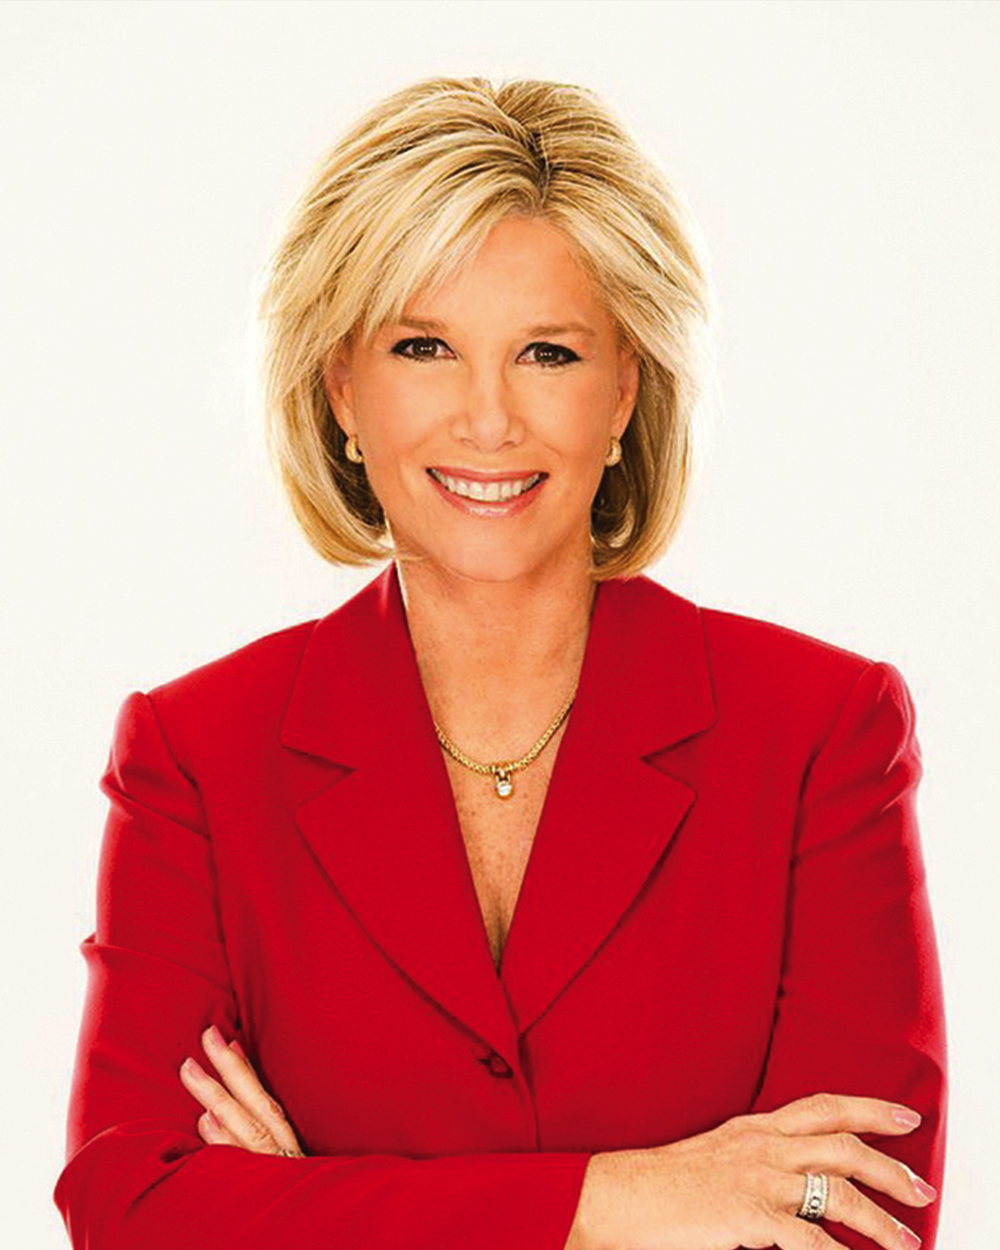 About Joan Lunden